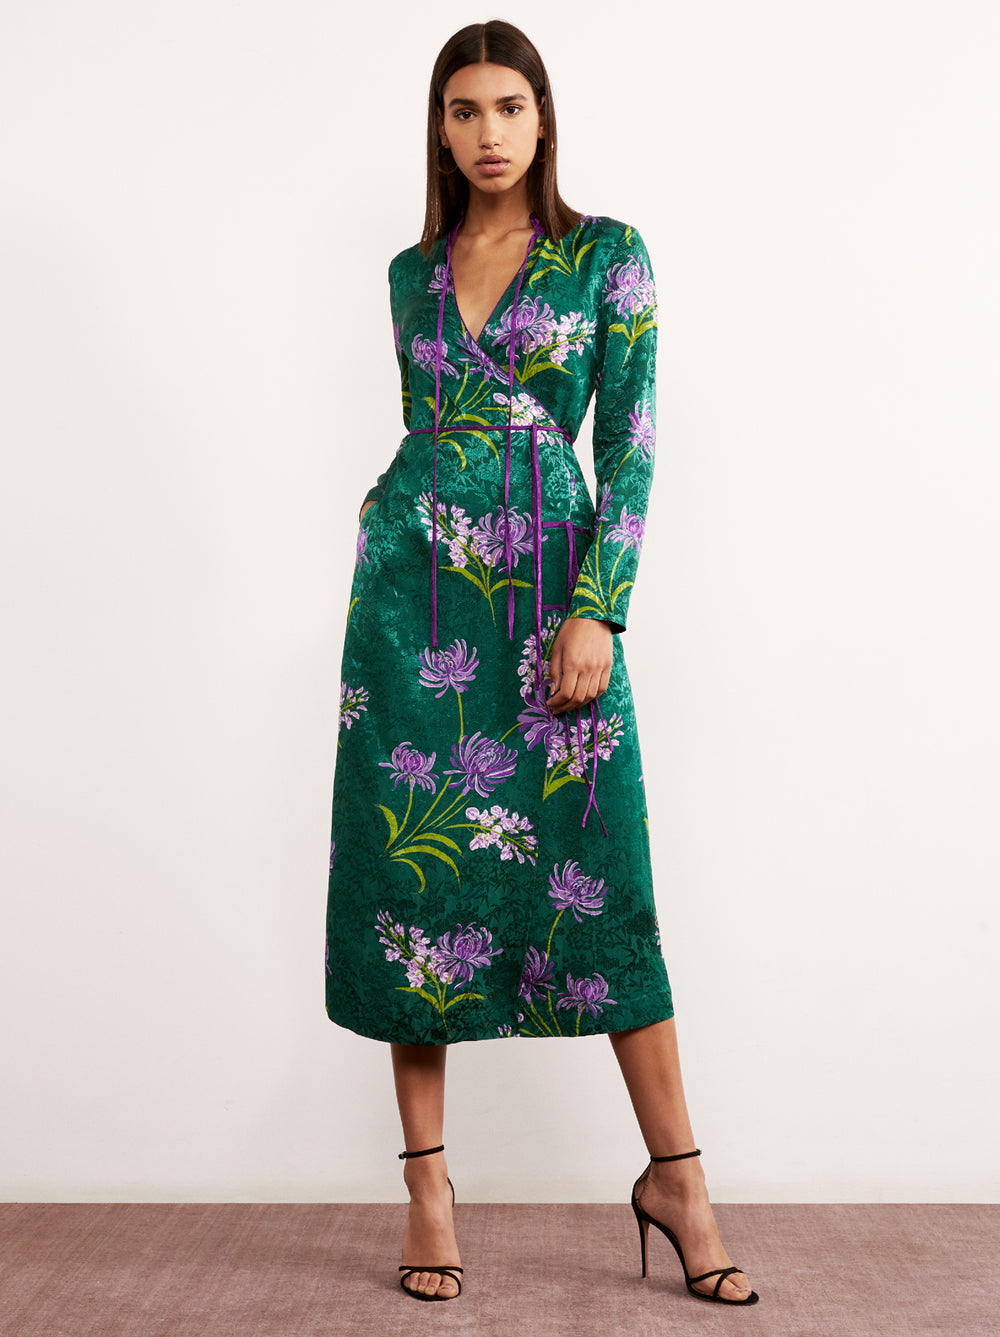 f40c47734da Frida Green Floral Print Midi Wrap Dress by KITRI Studio ...